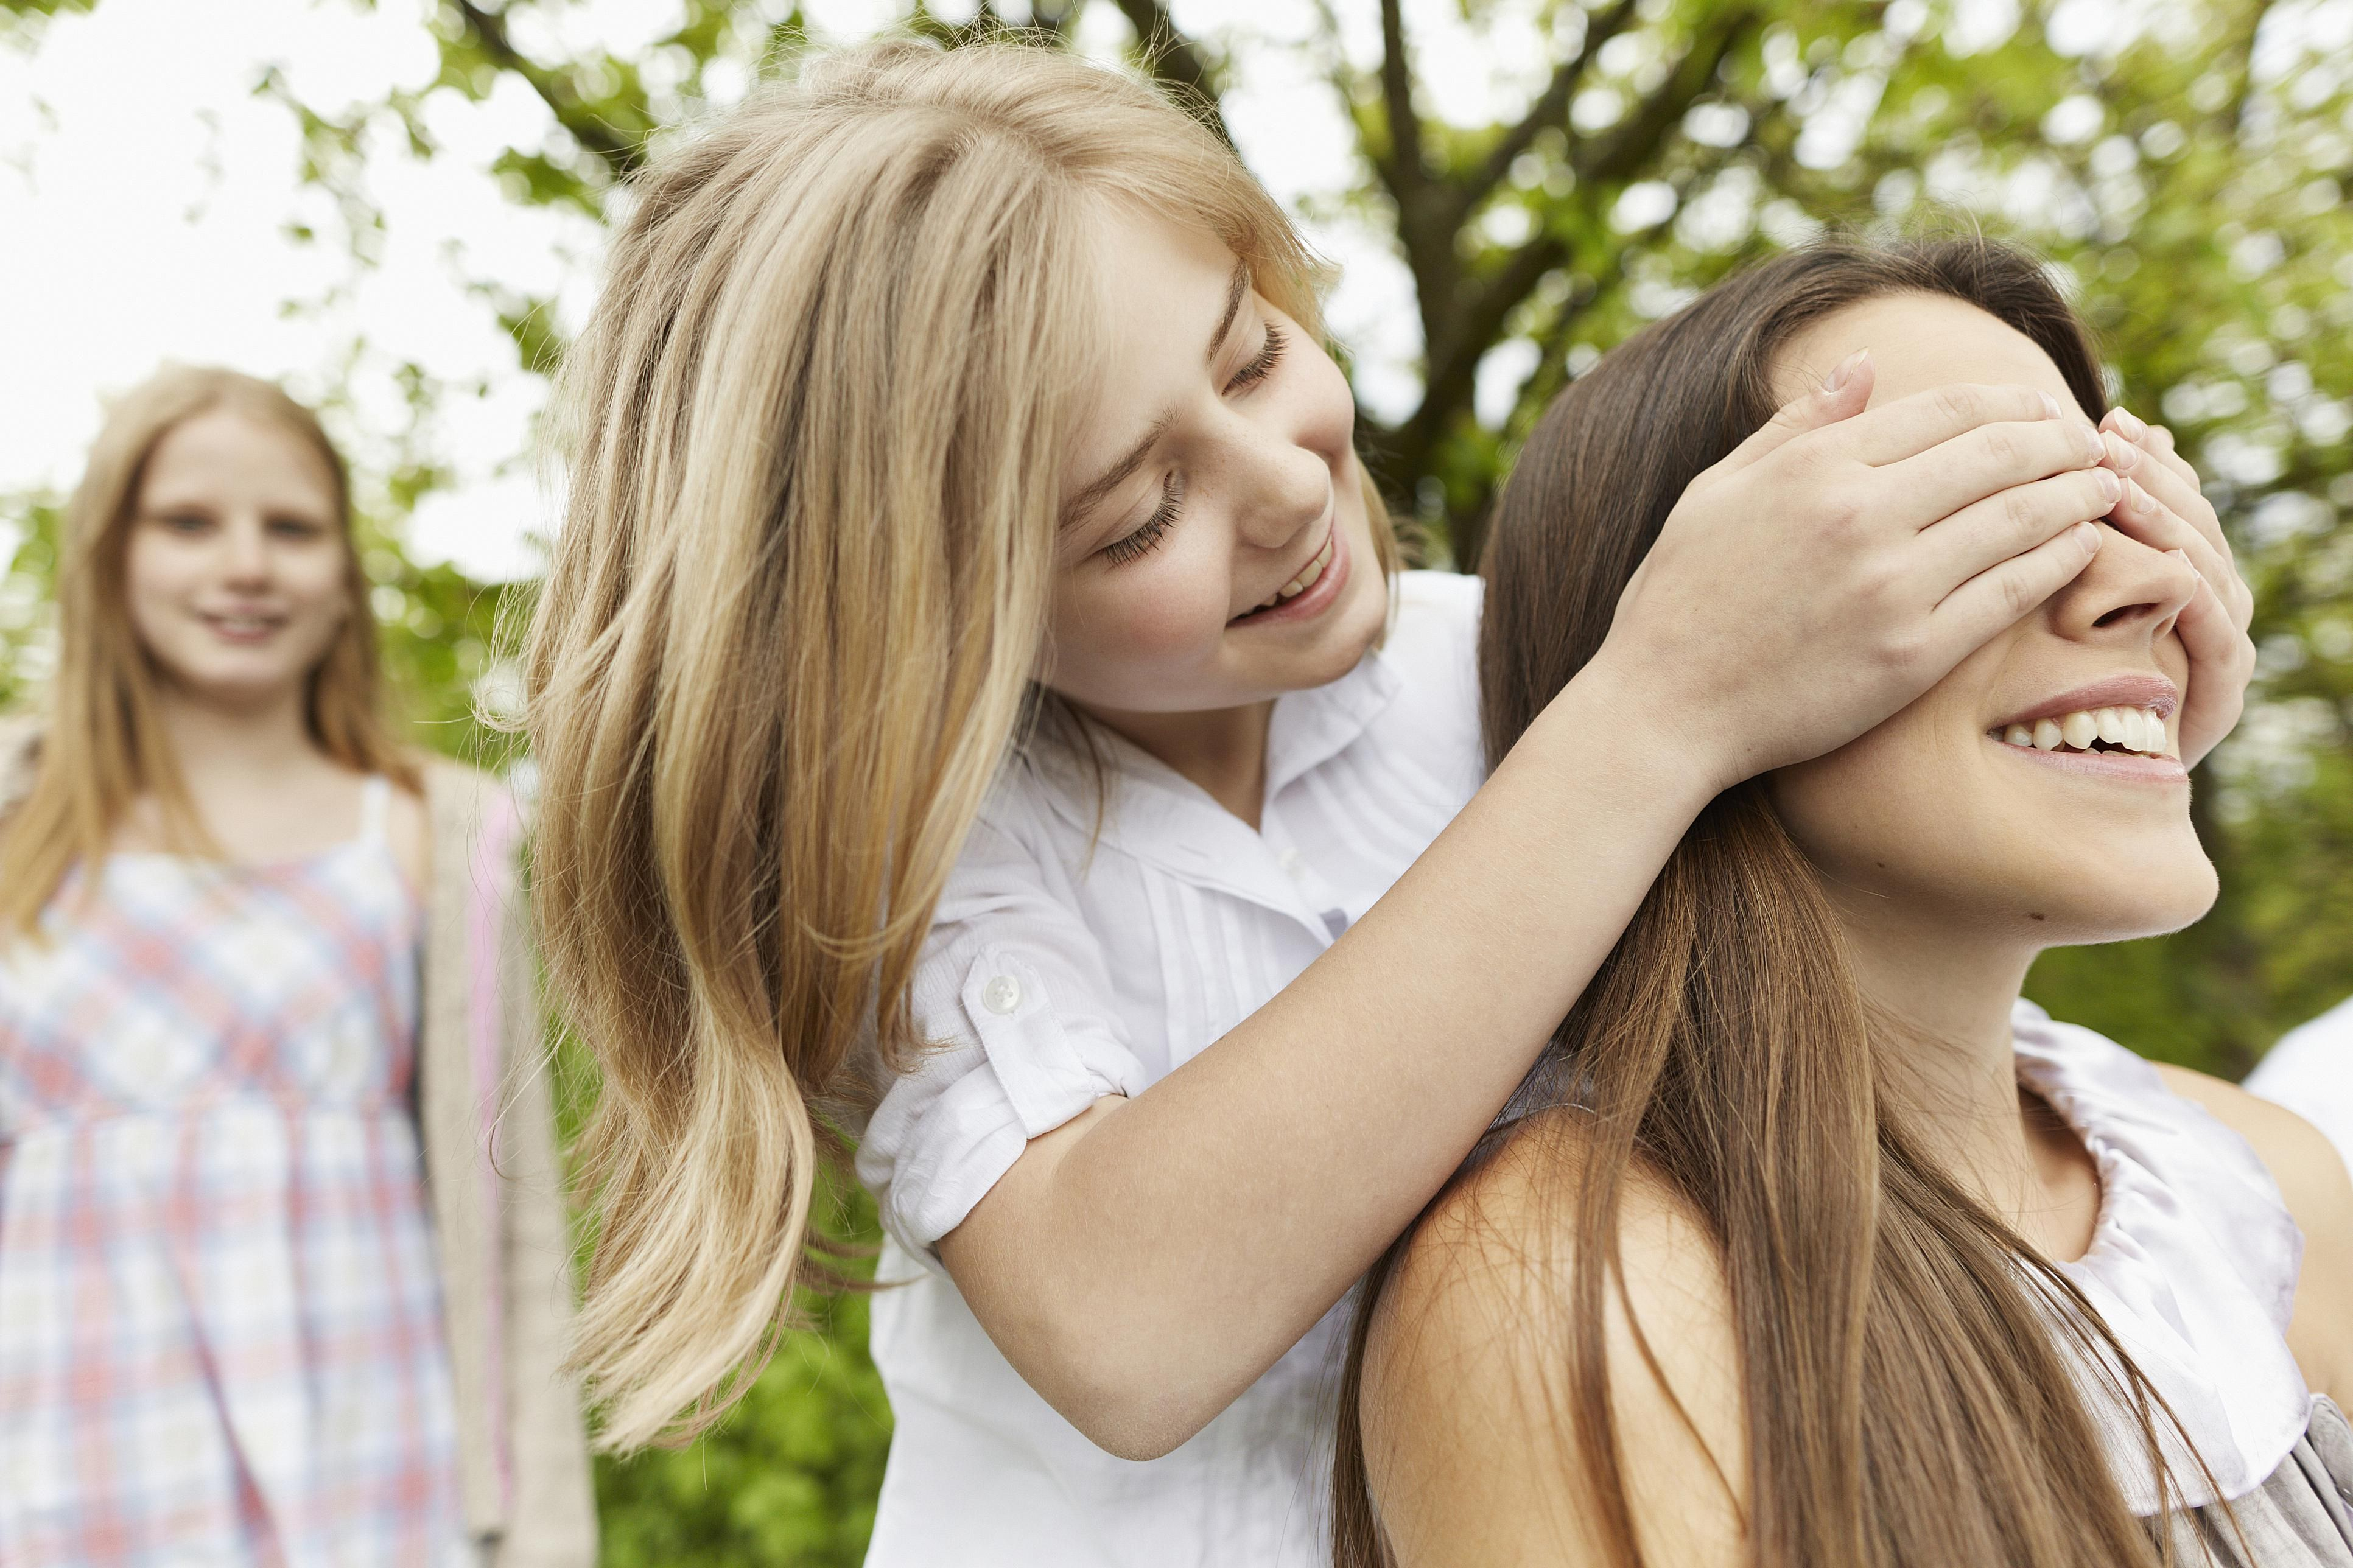 Girl covering woman's eyes outdoors